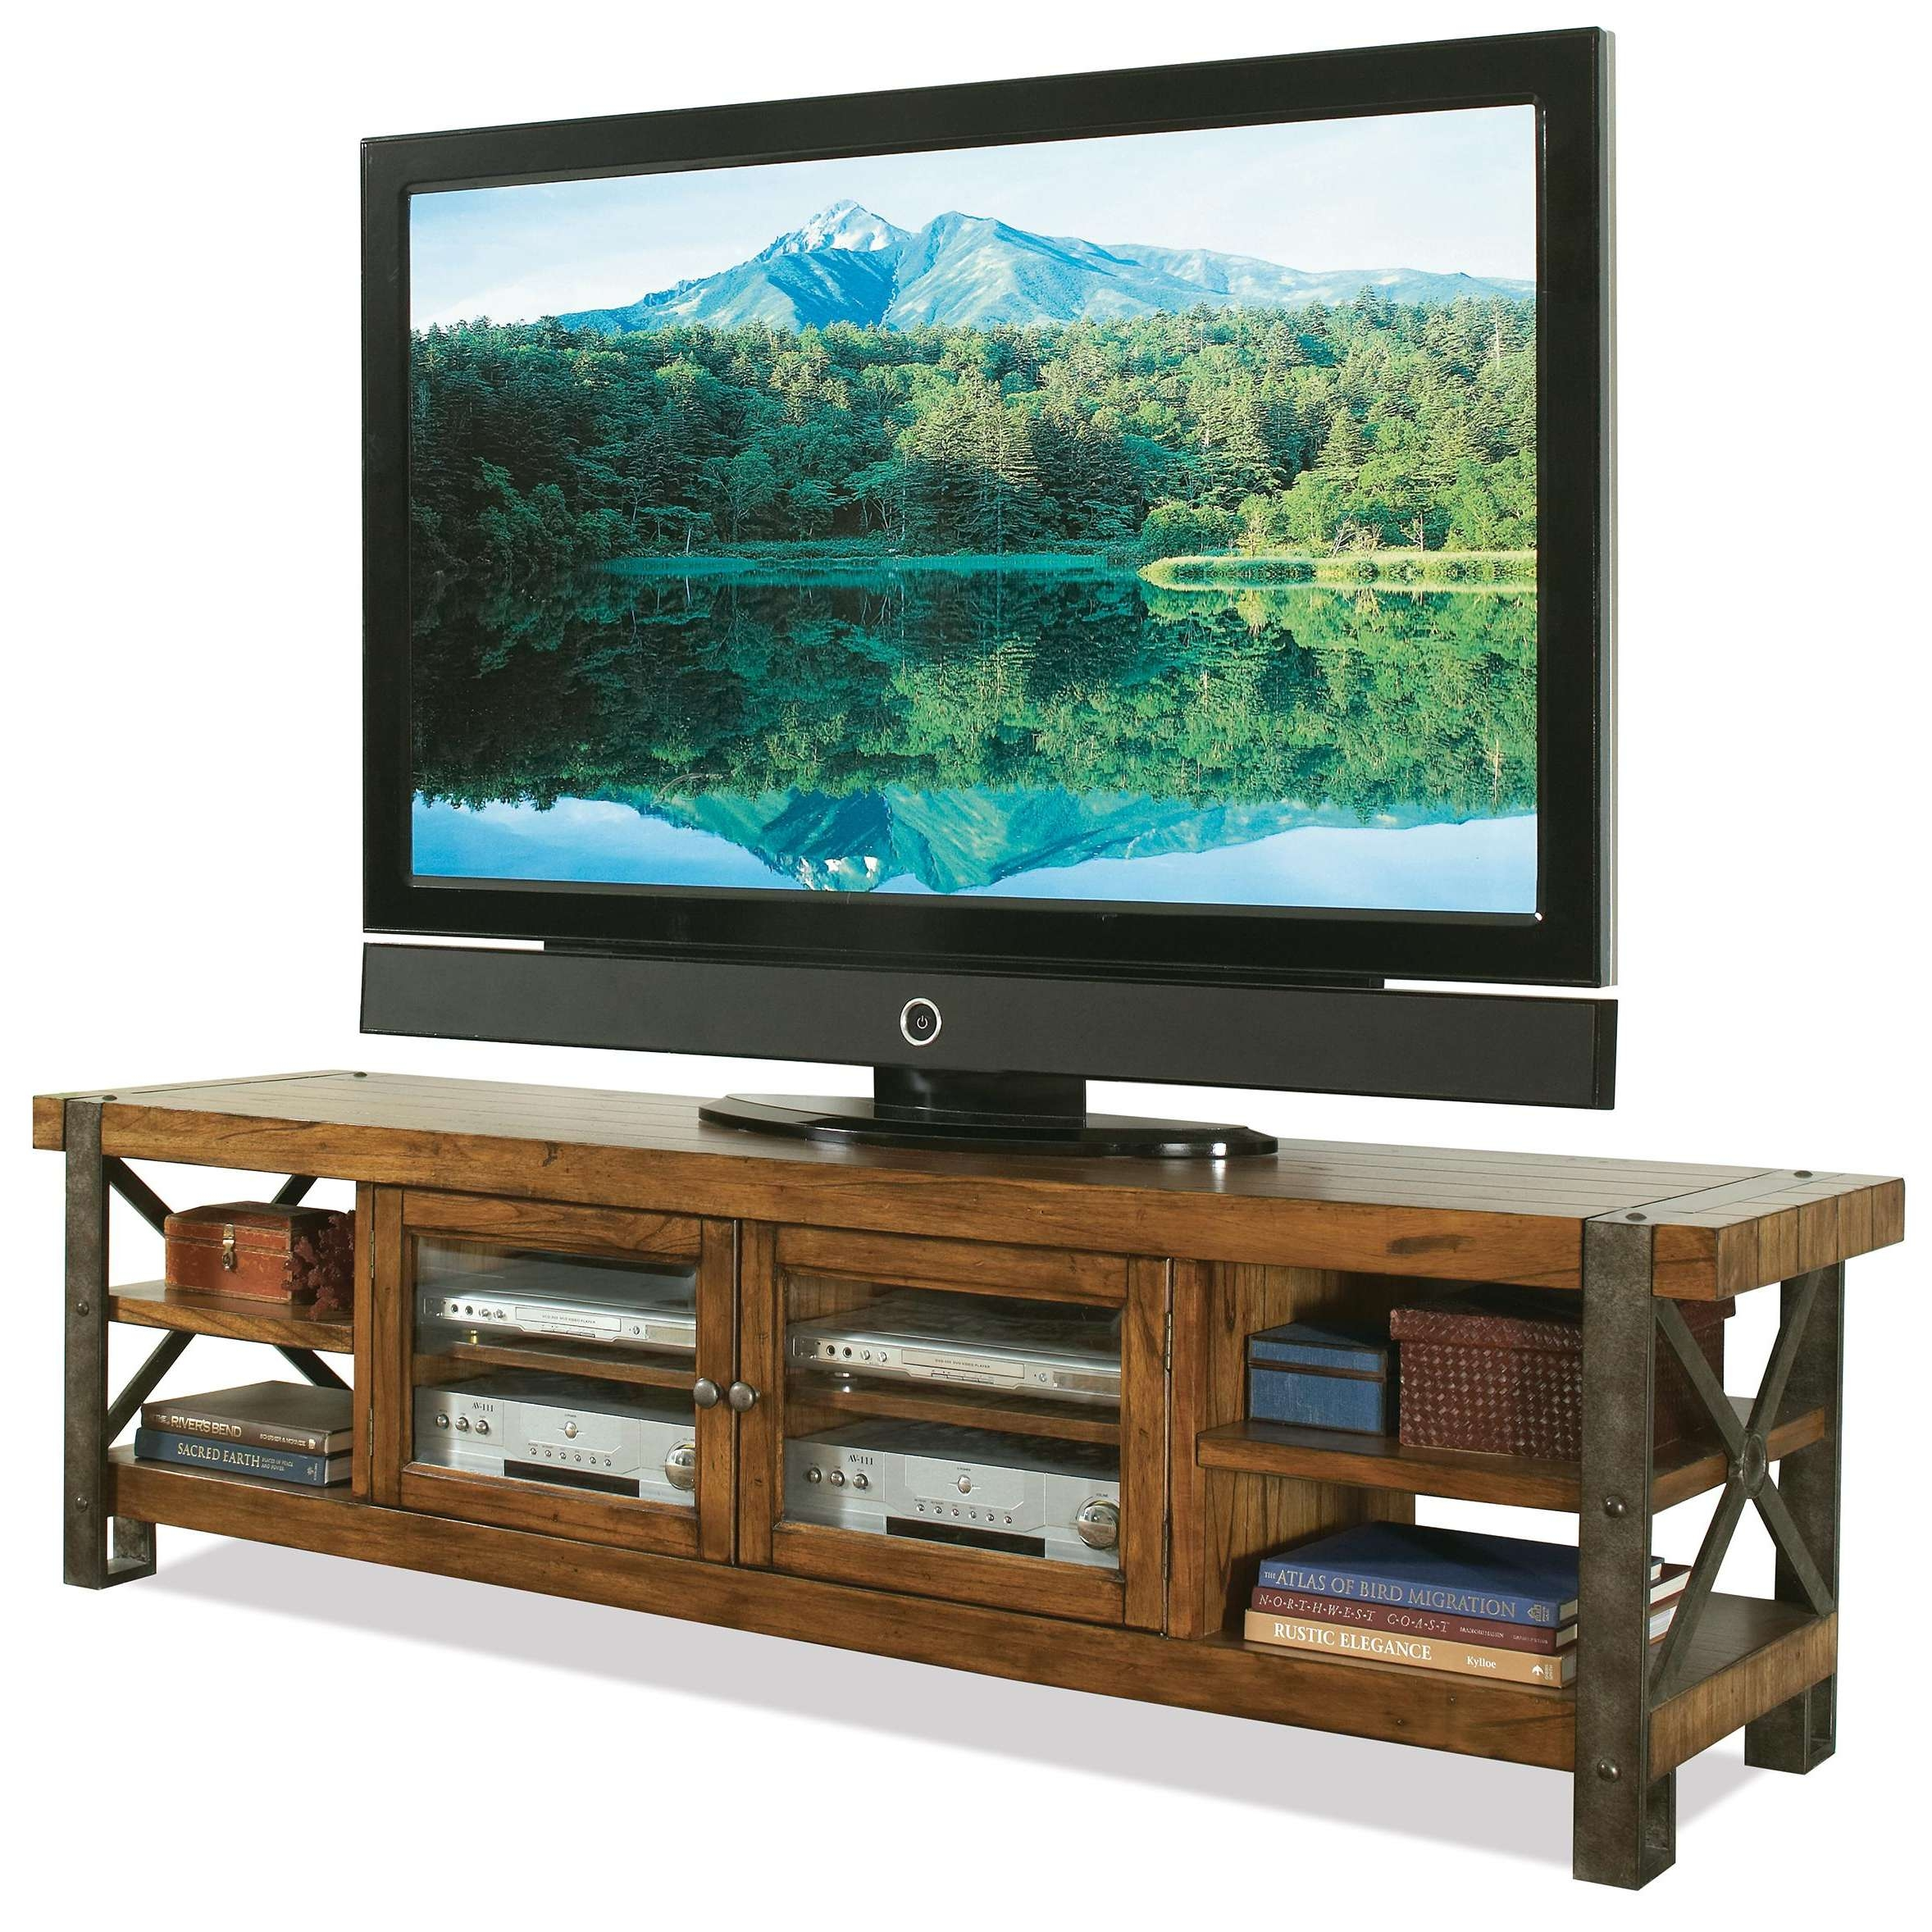 Rustic Tv Stand Console Table With Bookshelf And Storage With Pertaining To Metal And Wood Tv Stands (View 12 of 15)